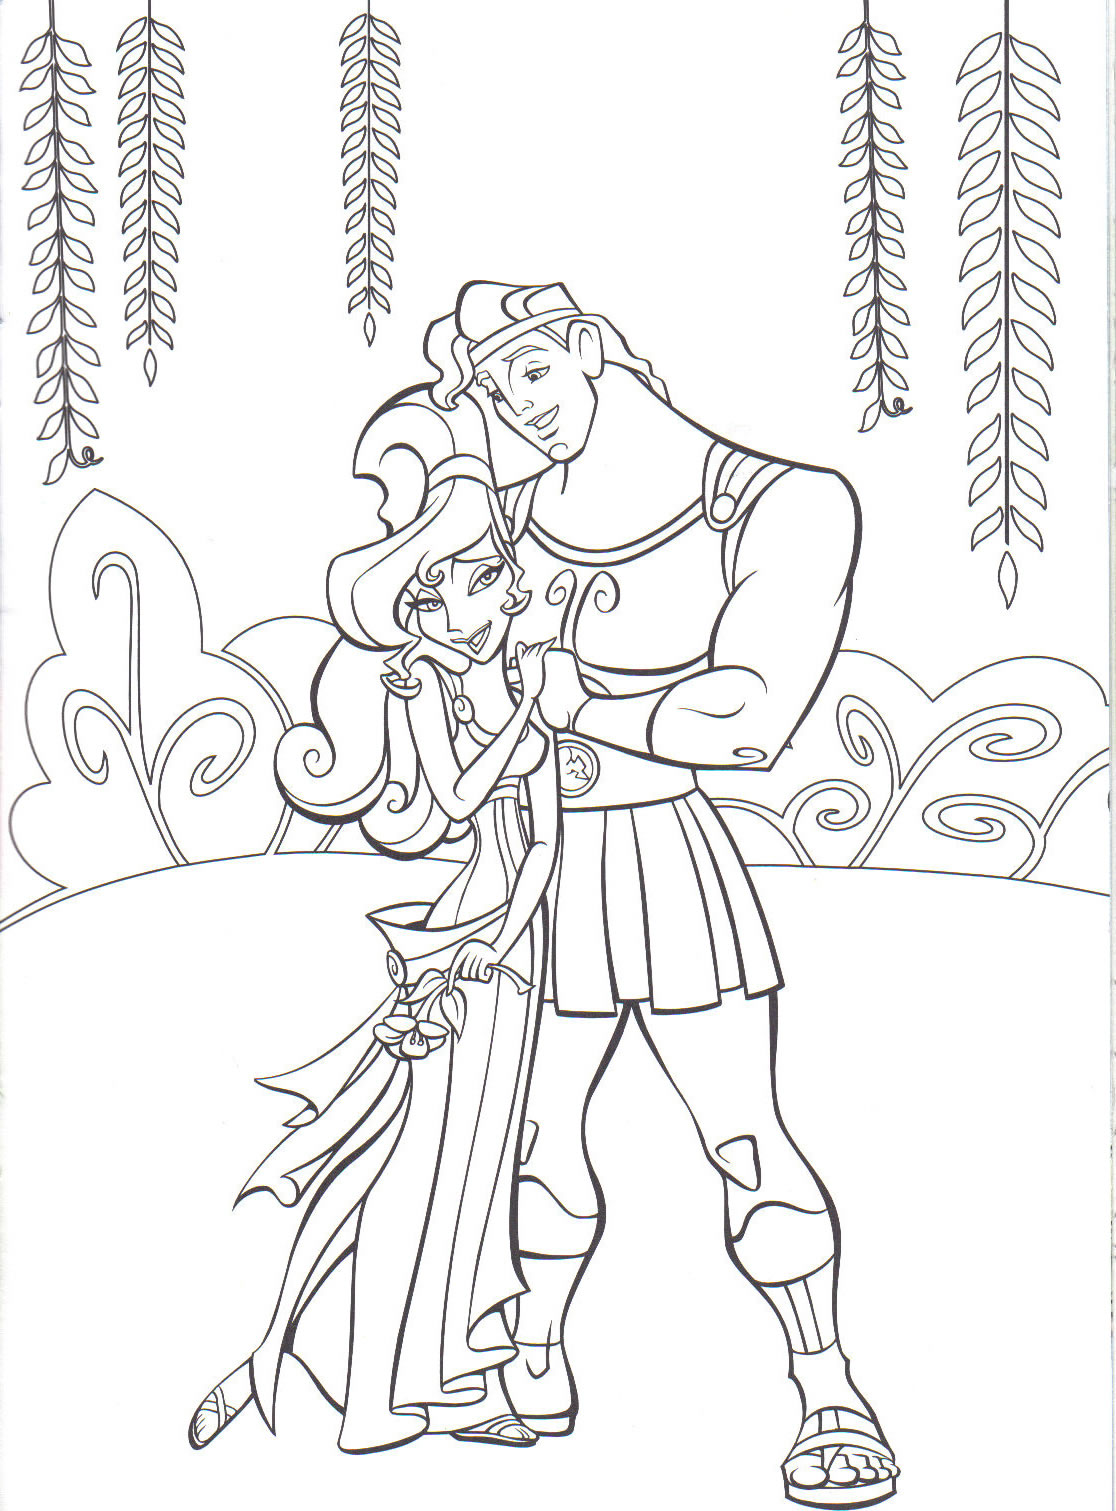 Hercules to download - Hercules Kids Coloring Pages